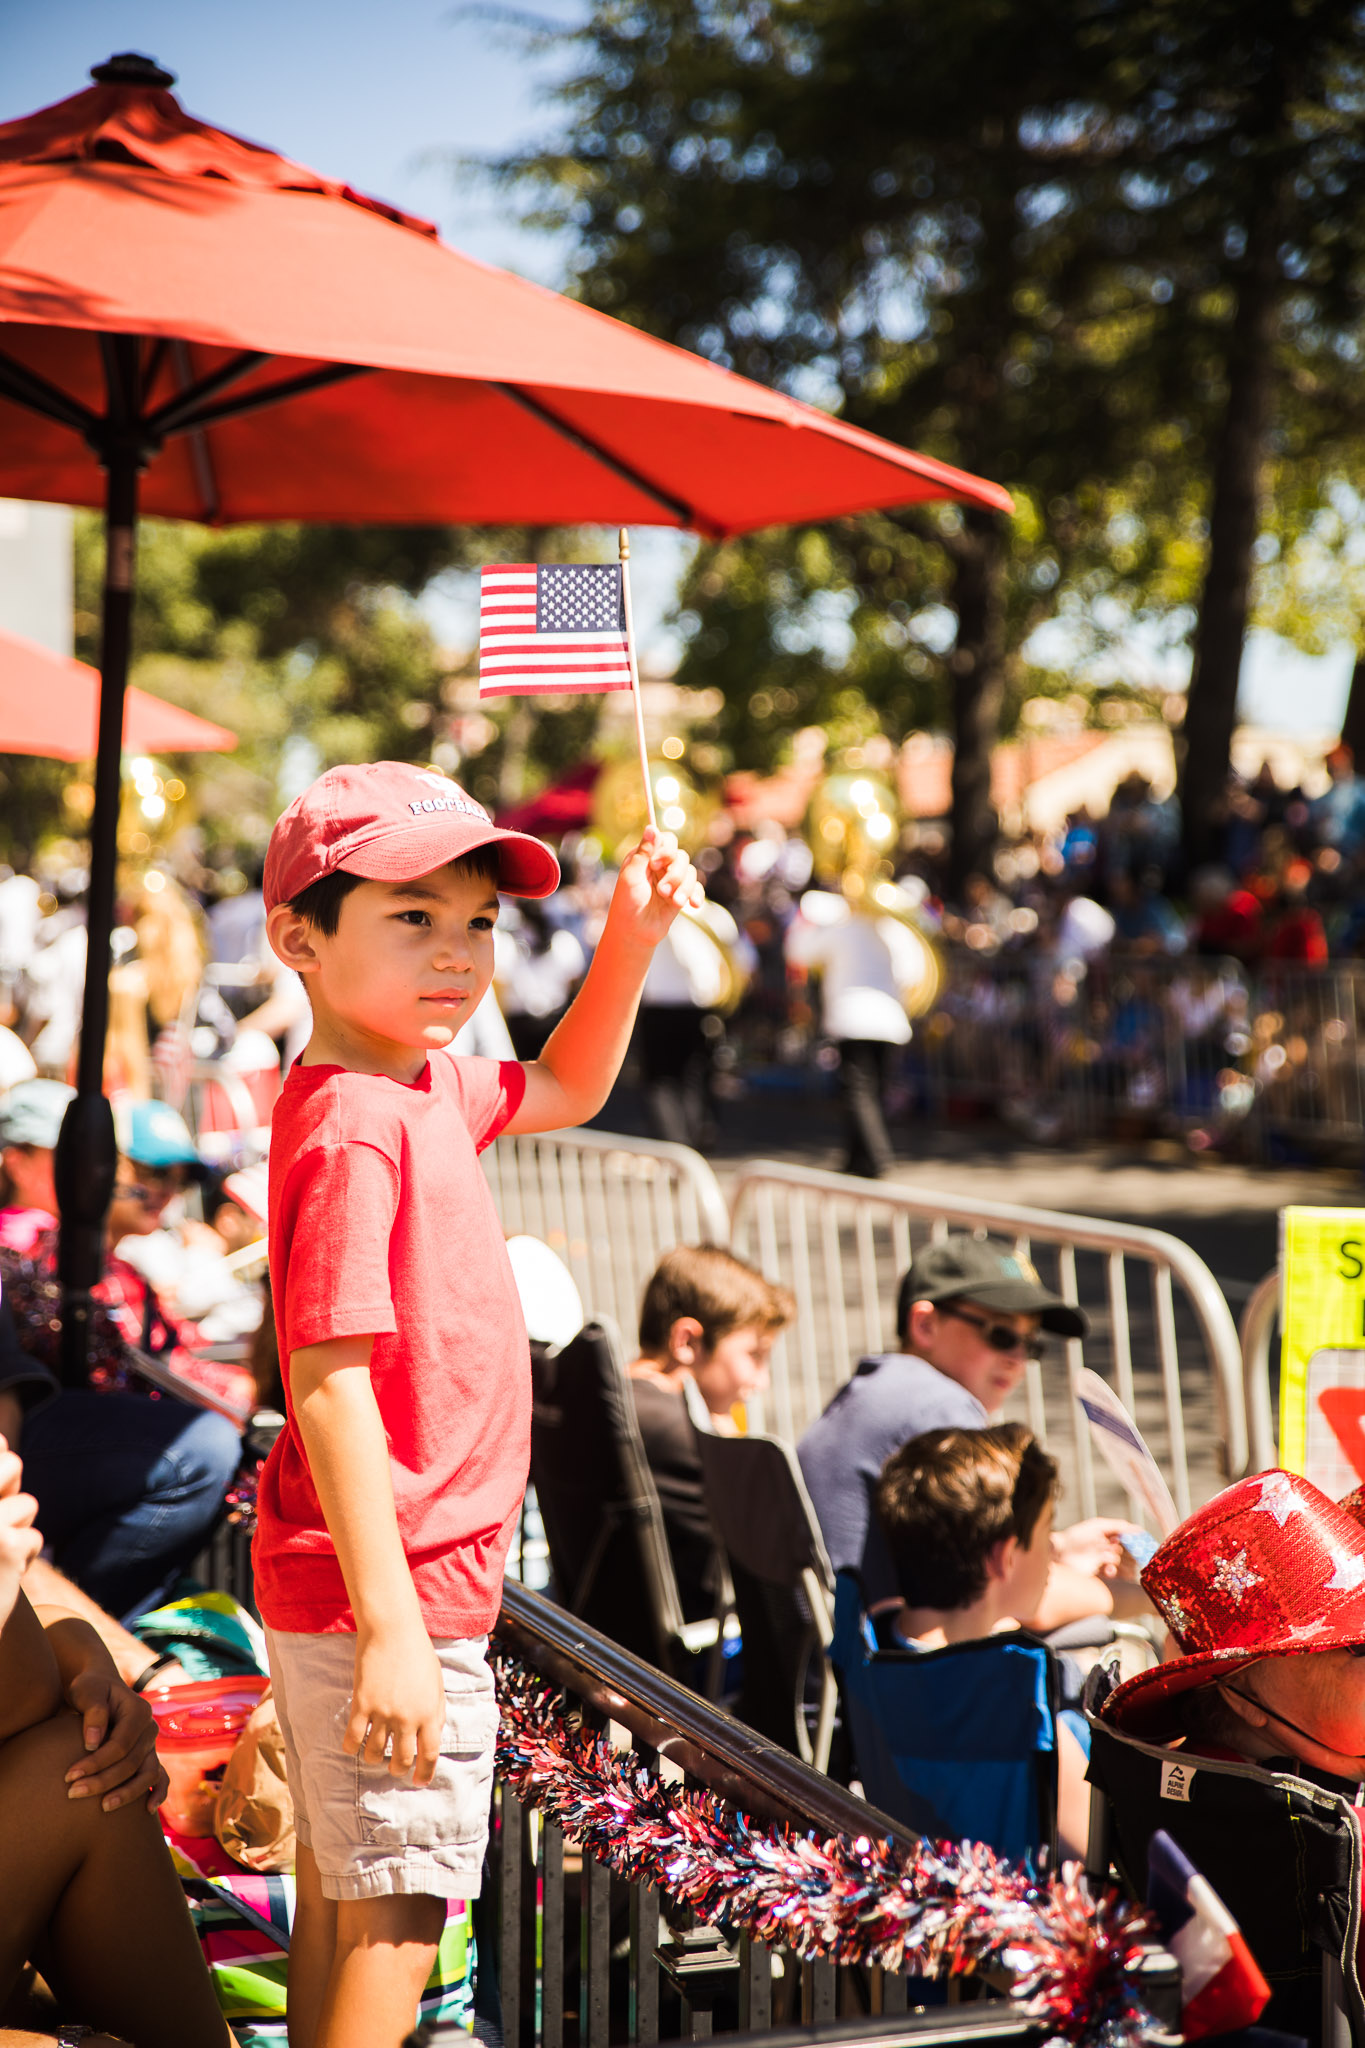 Archer_Inspired_Photography_Morgan_Hill_California_4th_of_july_parade-105.jpg